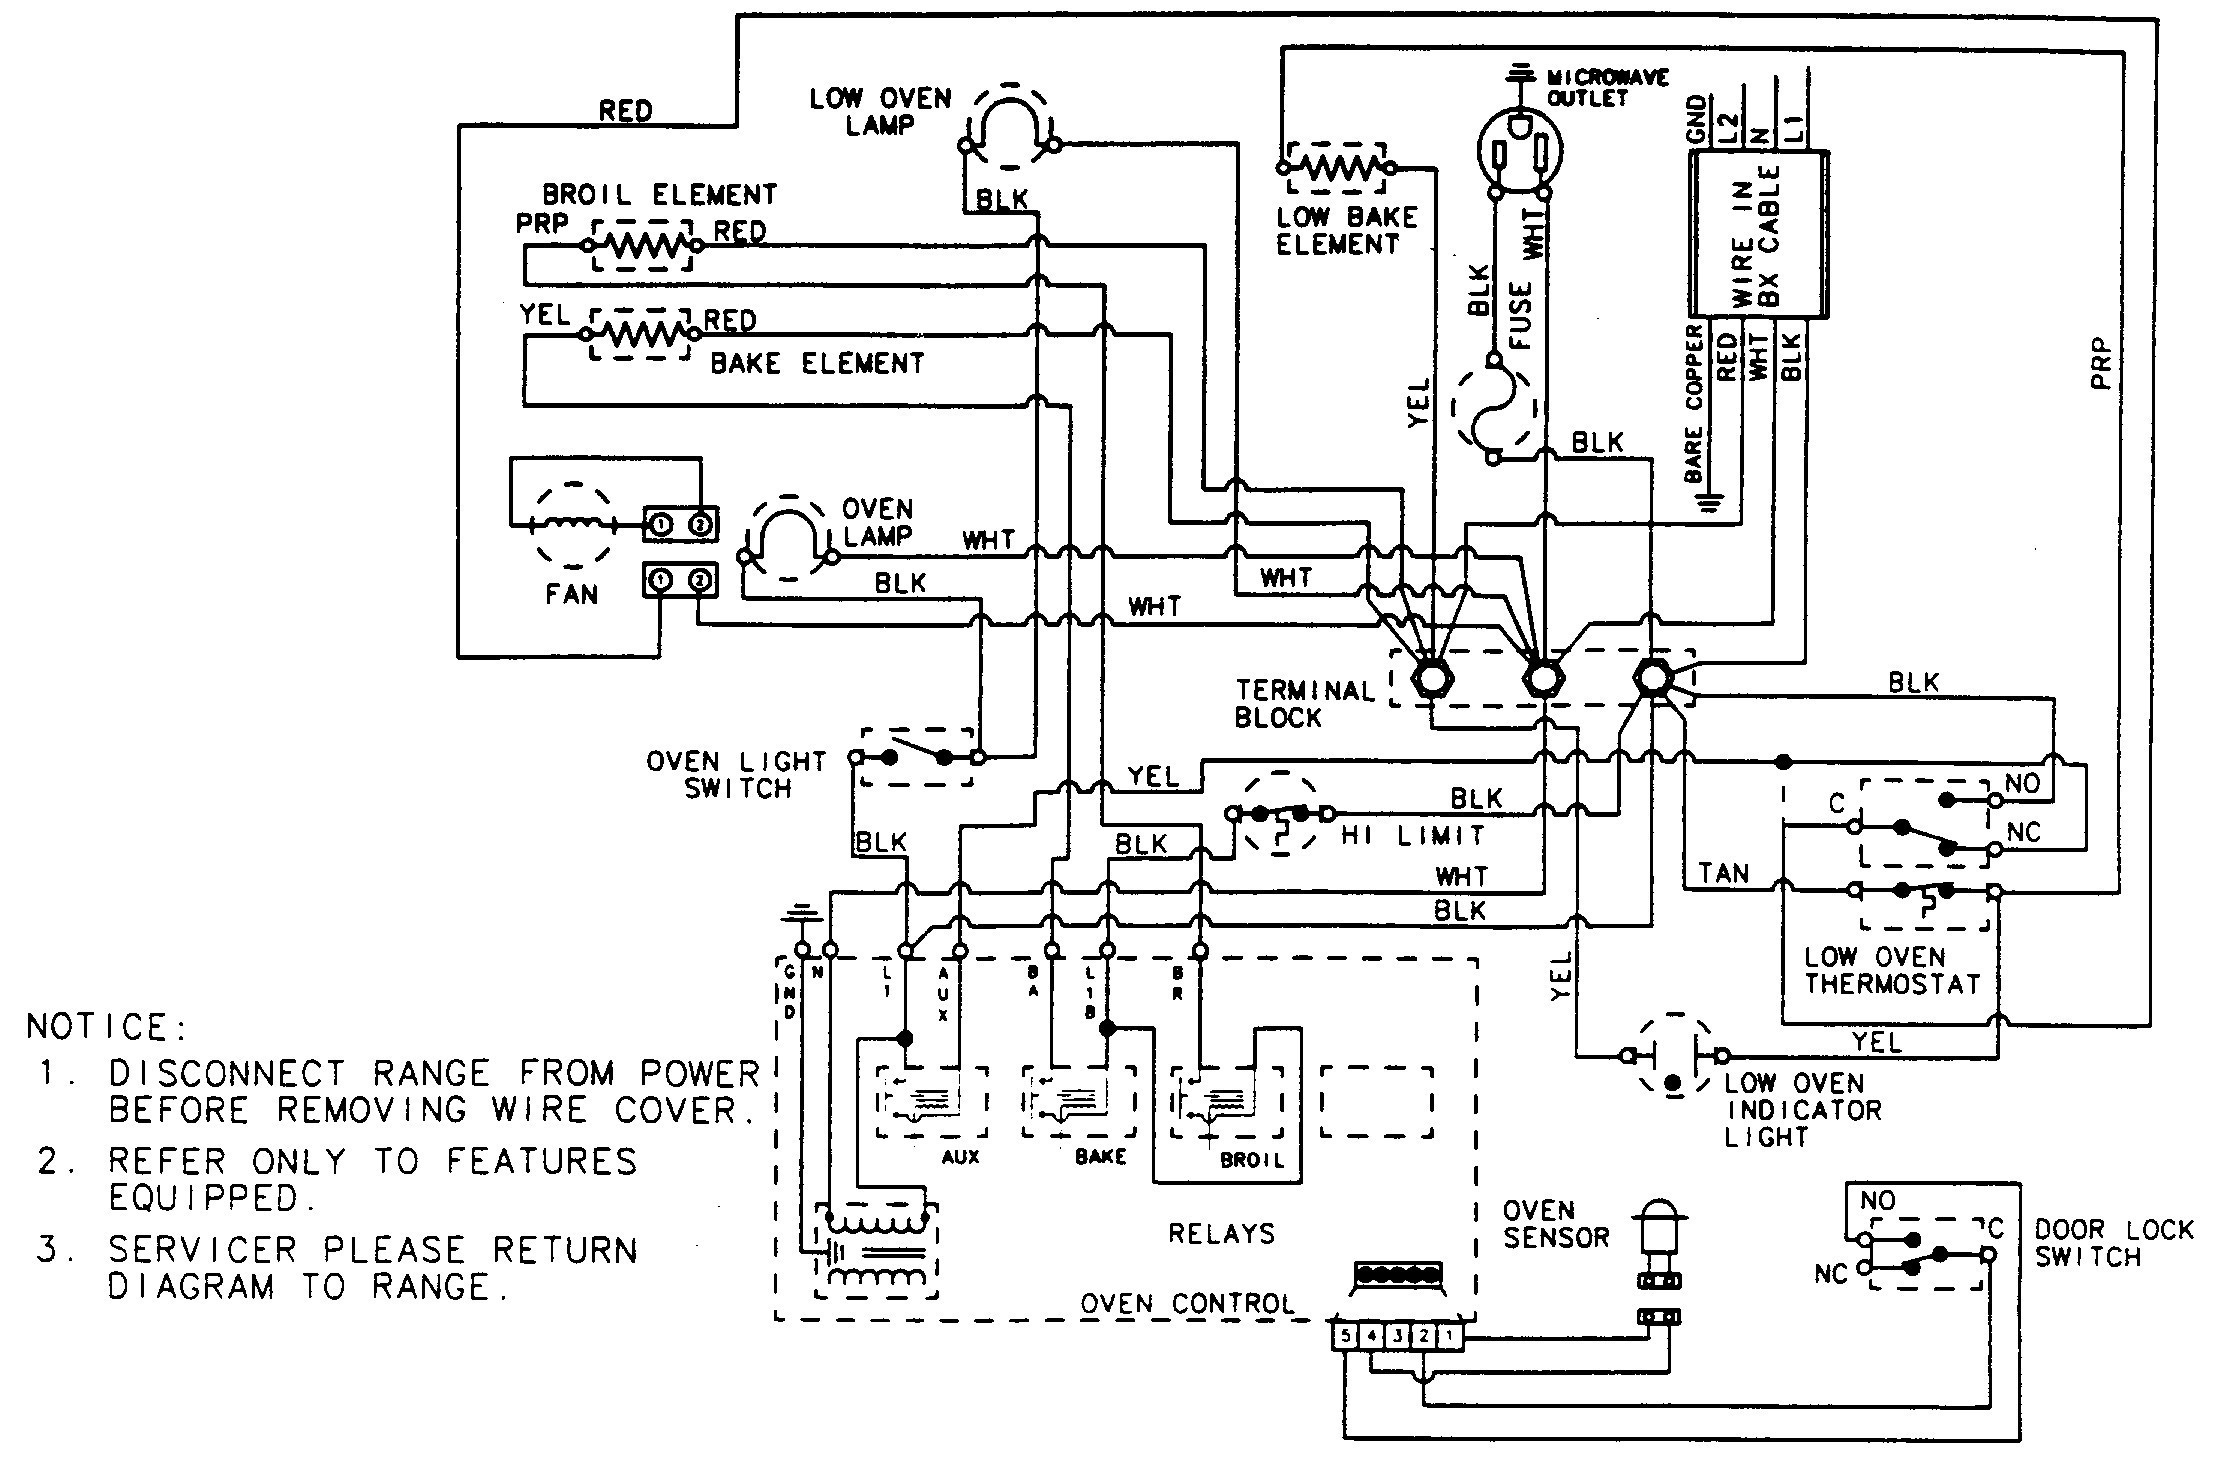 smeg double oven wiring diagram hot water tank diagrams tnscgr thedelhipalace de images gallery